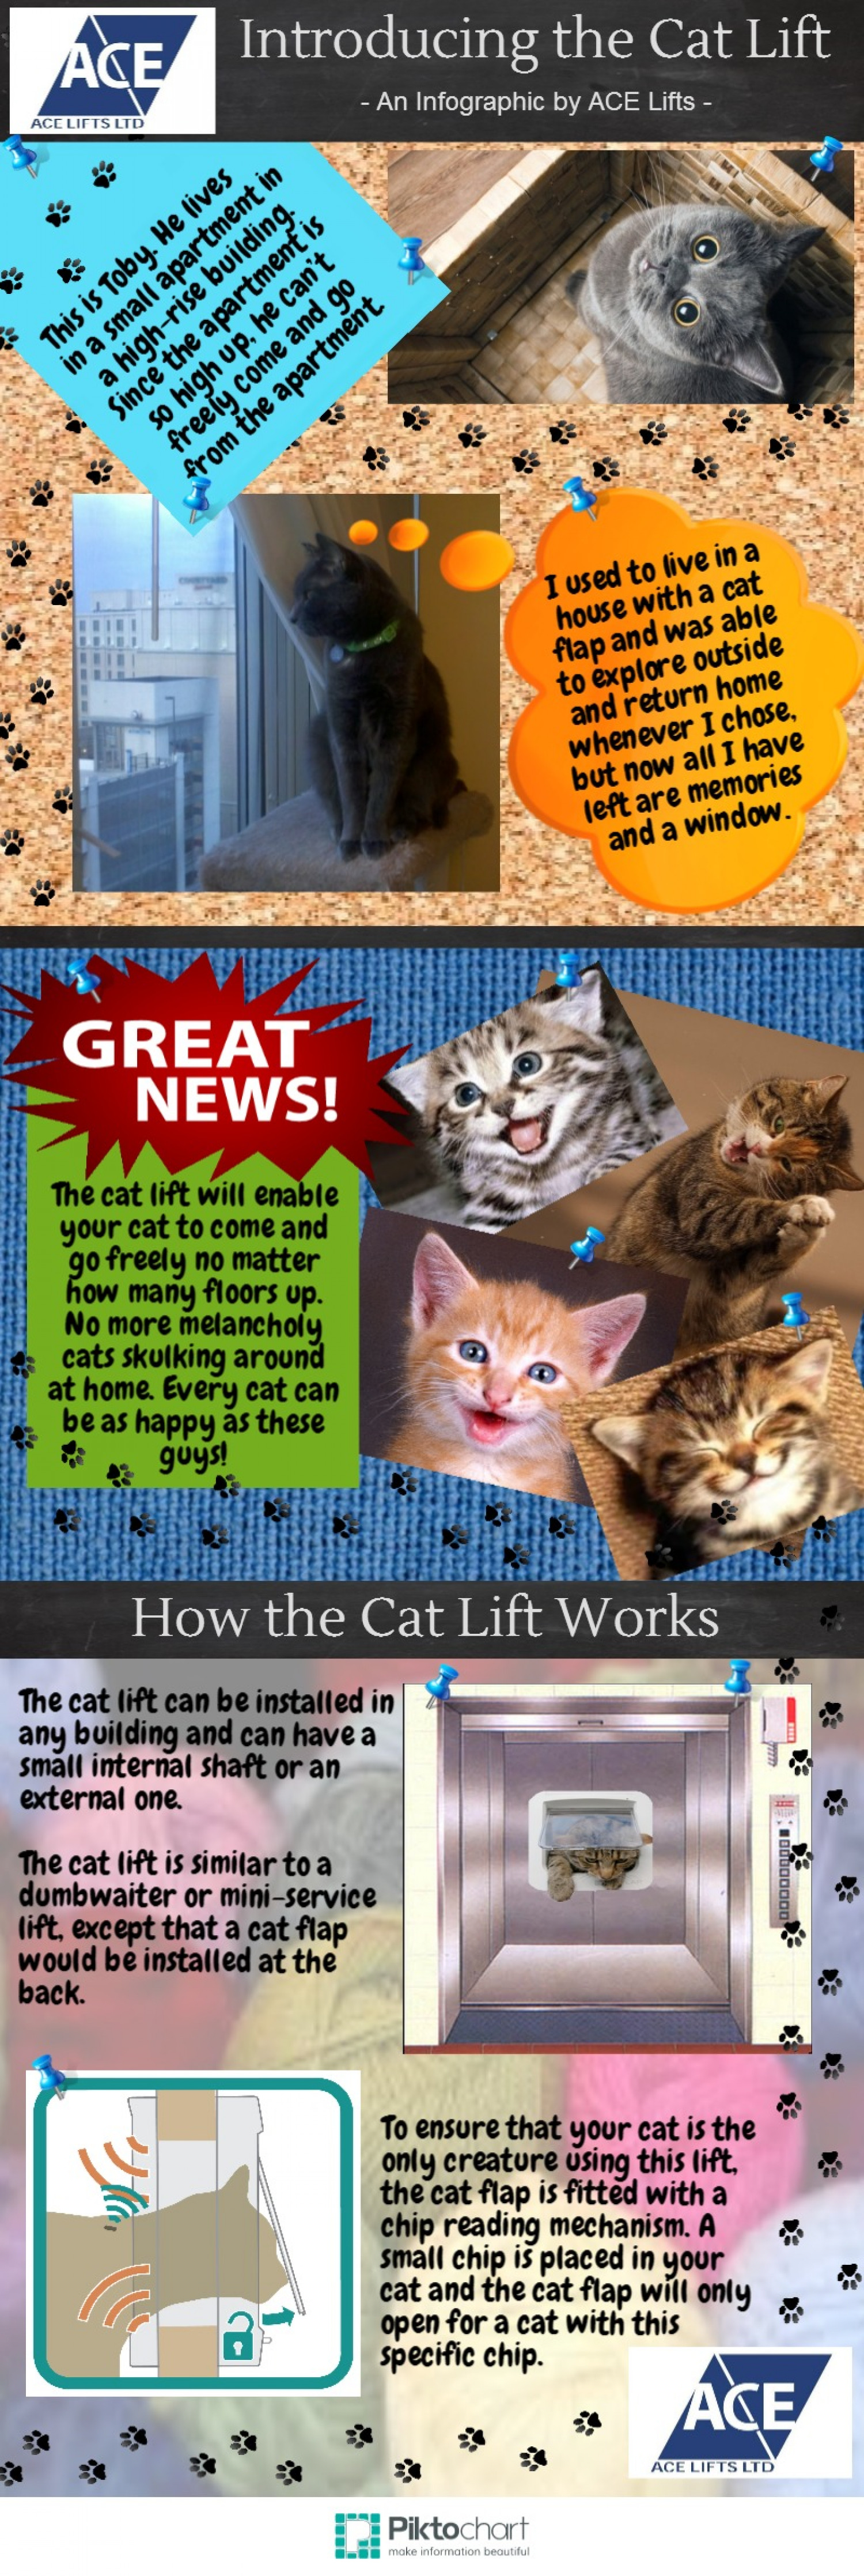 Introducing the Cat Lift Infographic